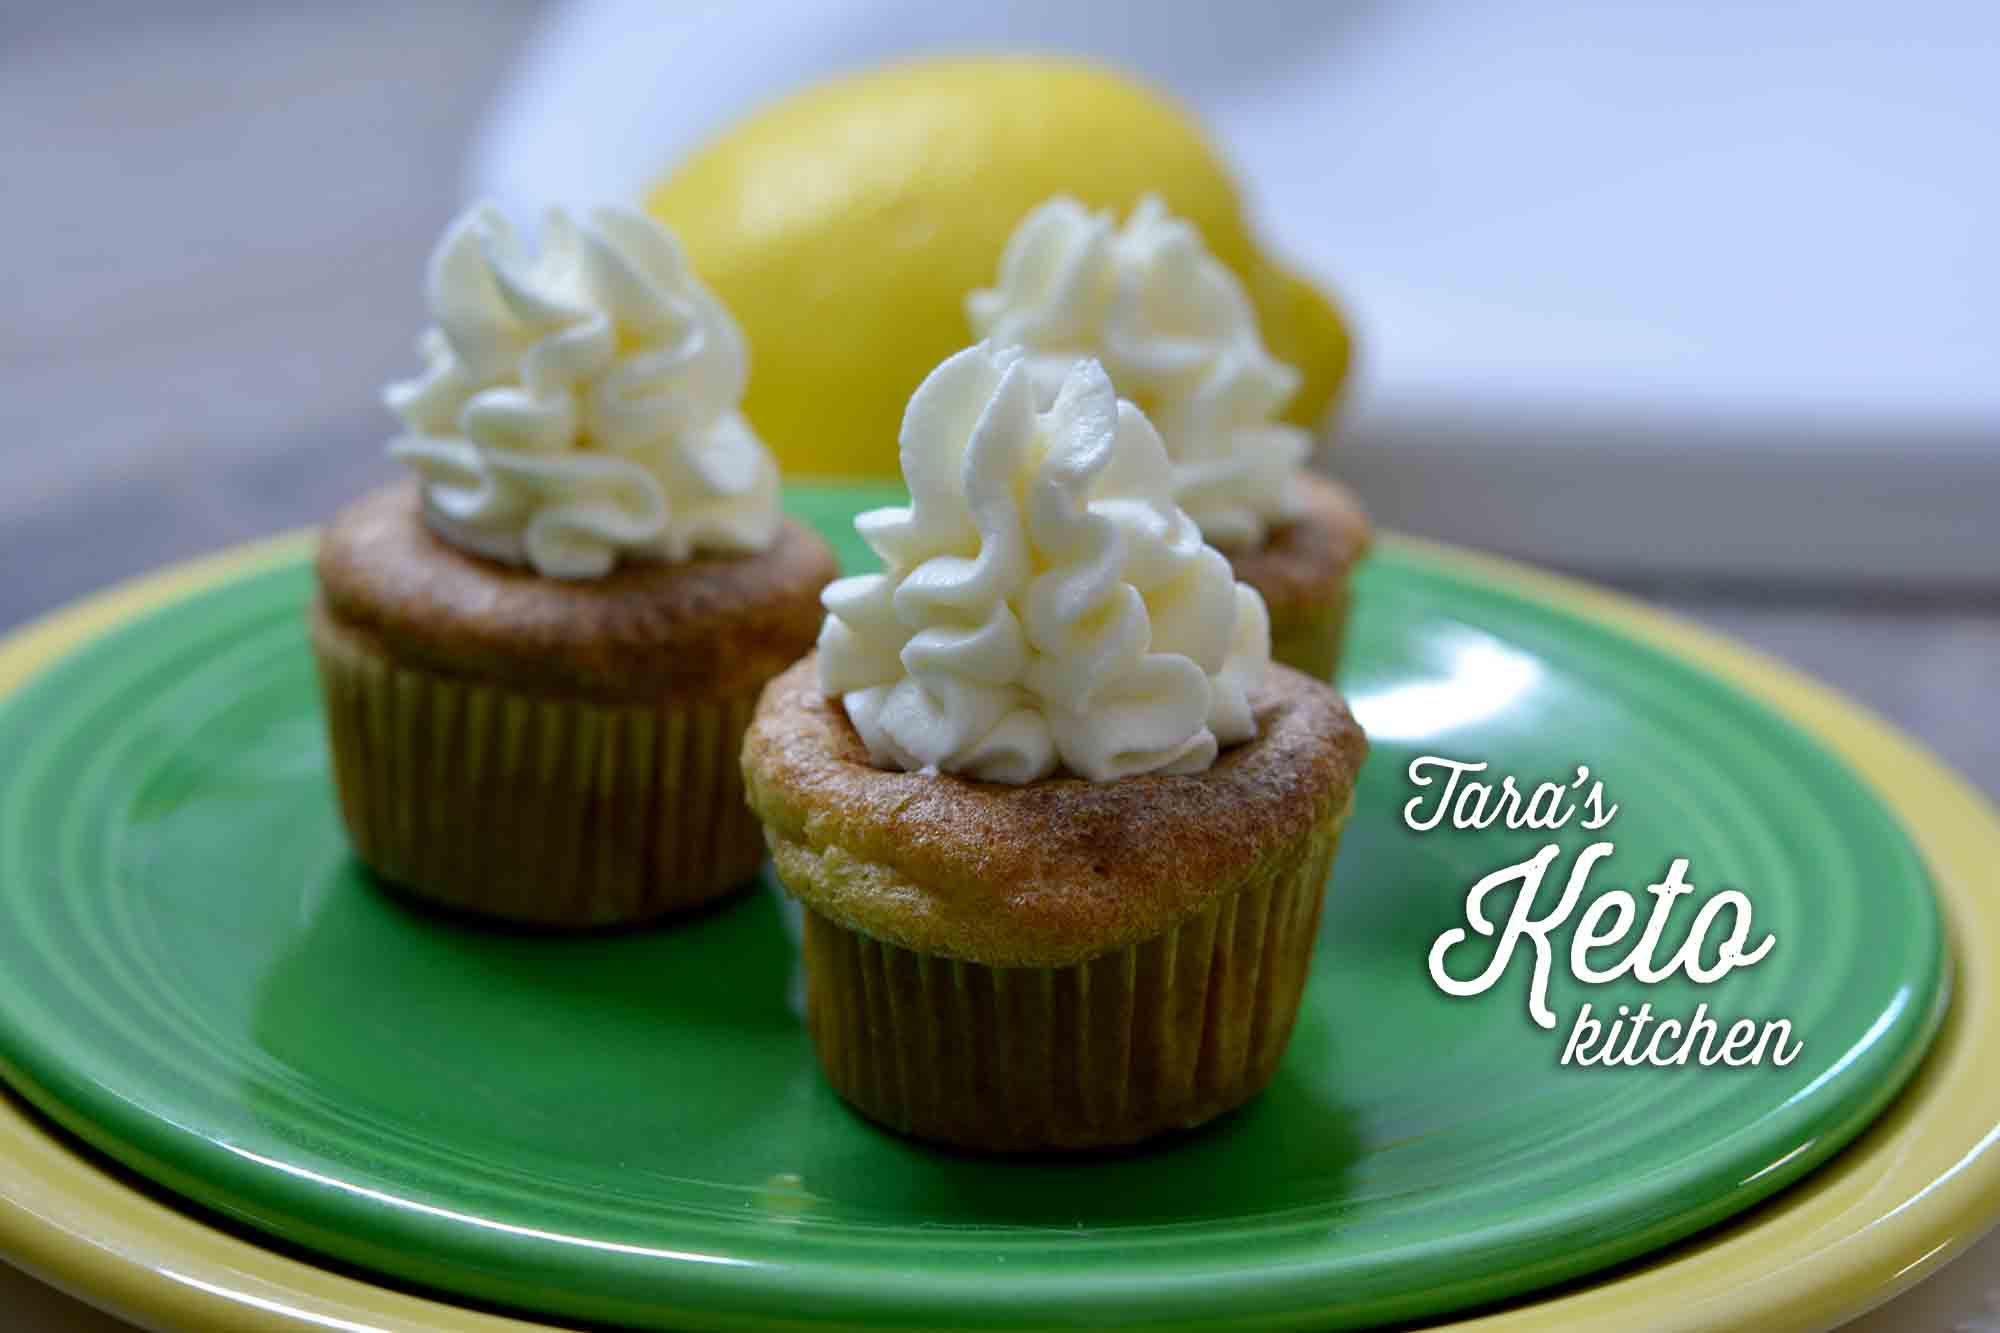 keto vanilla cupcakes topped with lemon lime frosting